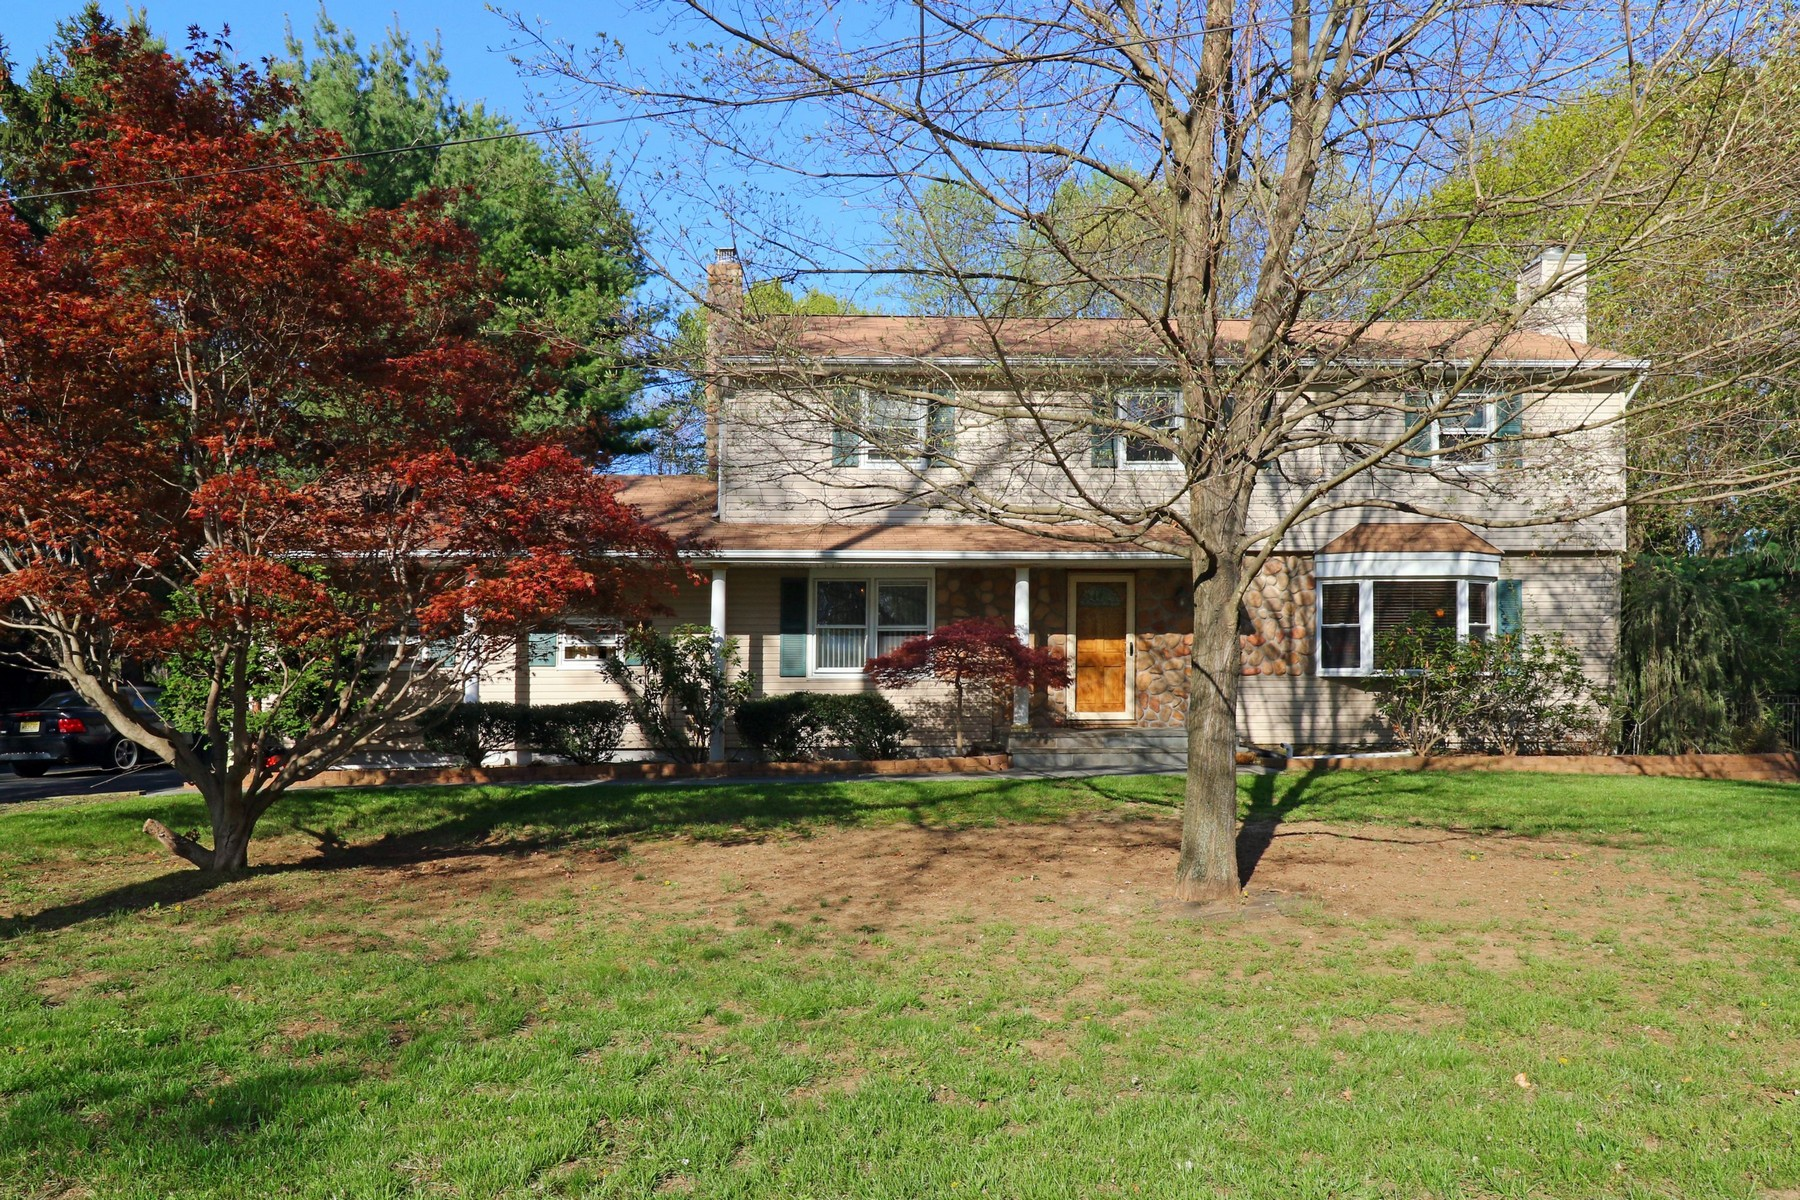 Single Family Home for Sale at 61 Broadmoor Drive 61 Broadmoor Dr. Lincroft, New Jersey, 07738 United States